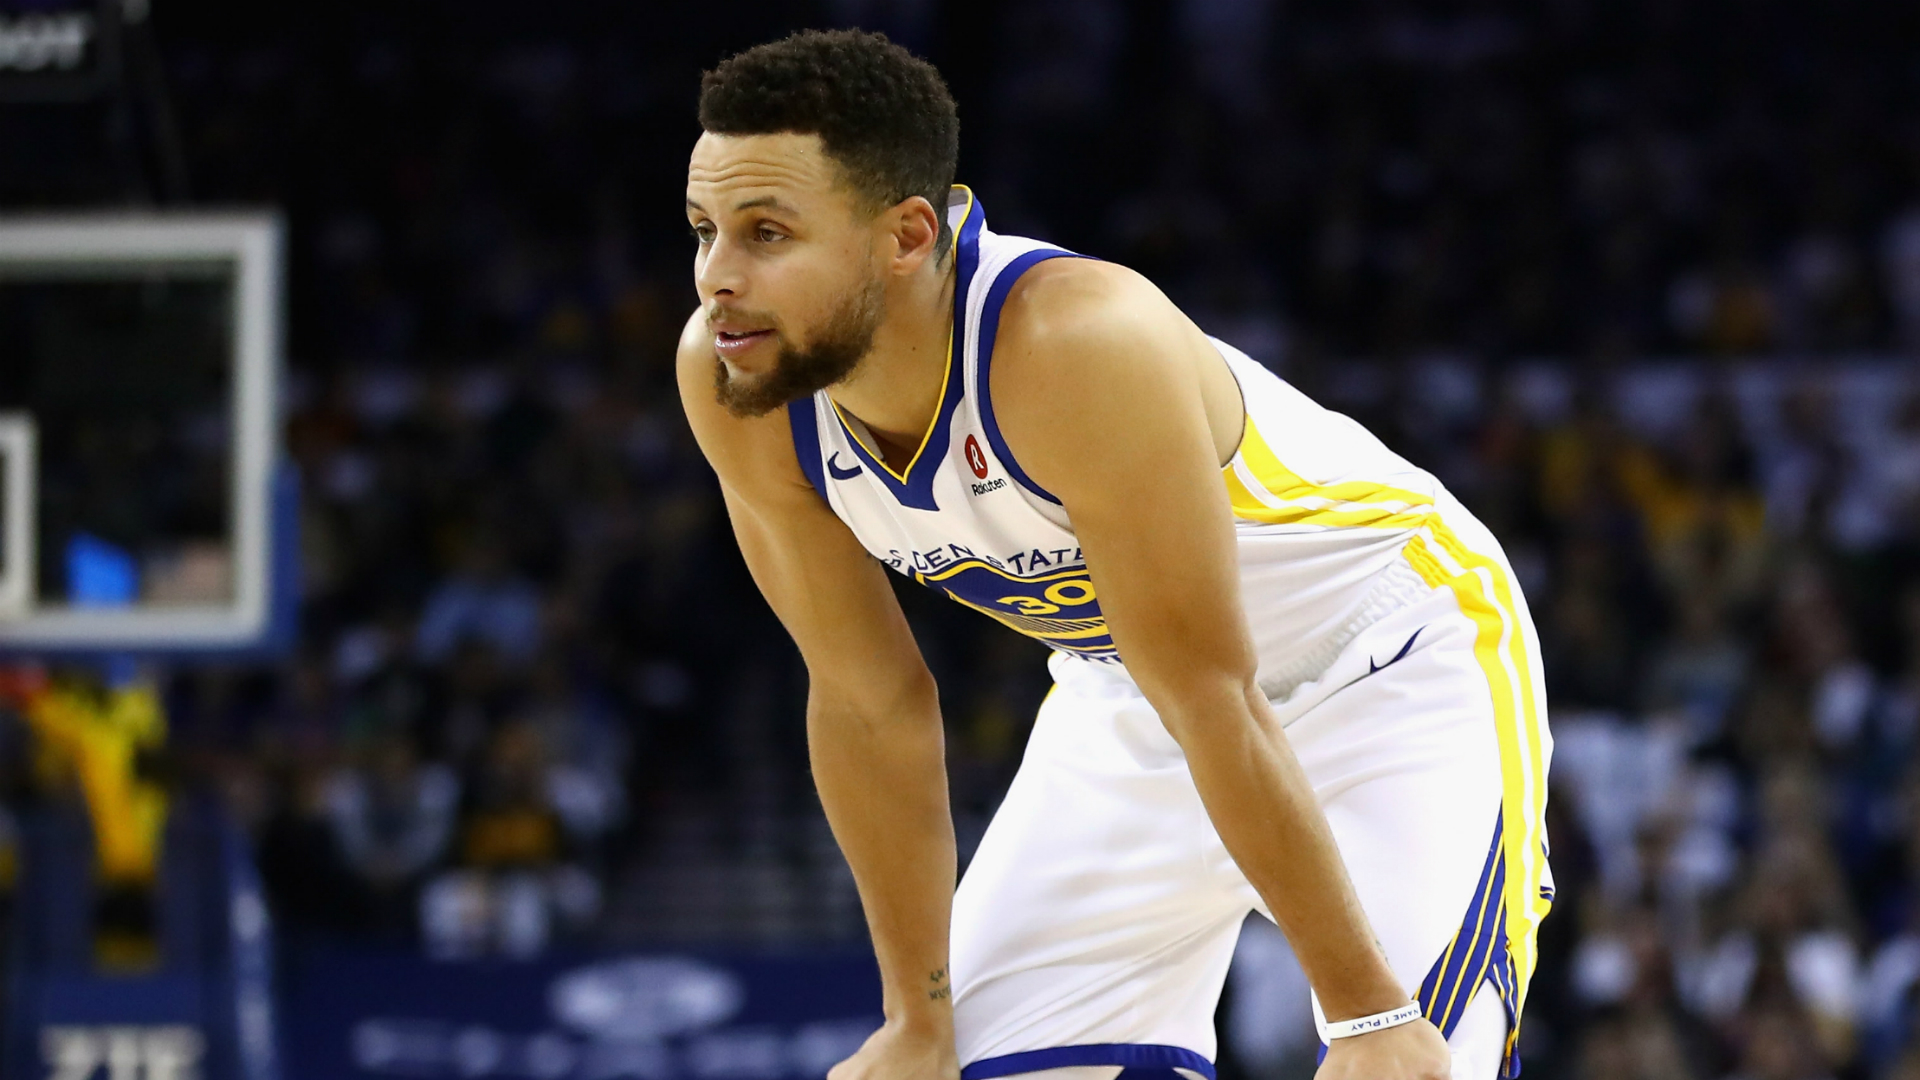 Stephen Curry was defending a drive to the basket when he jumped and came down on Golden State Warriors team-mate Zaza Pachulia's foot.